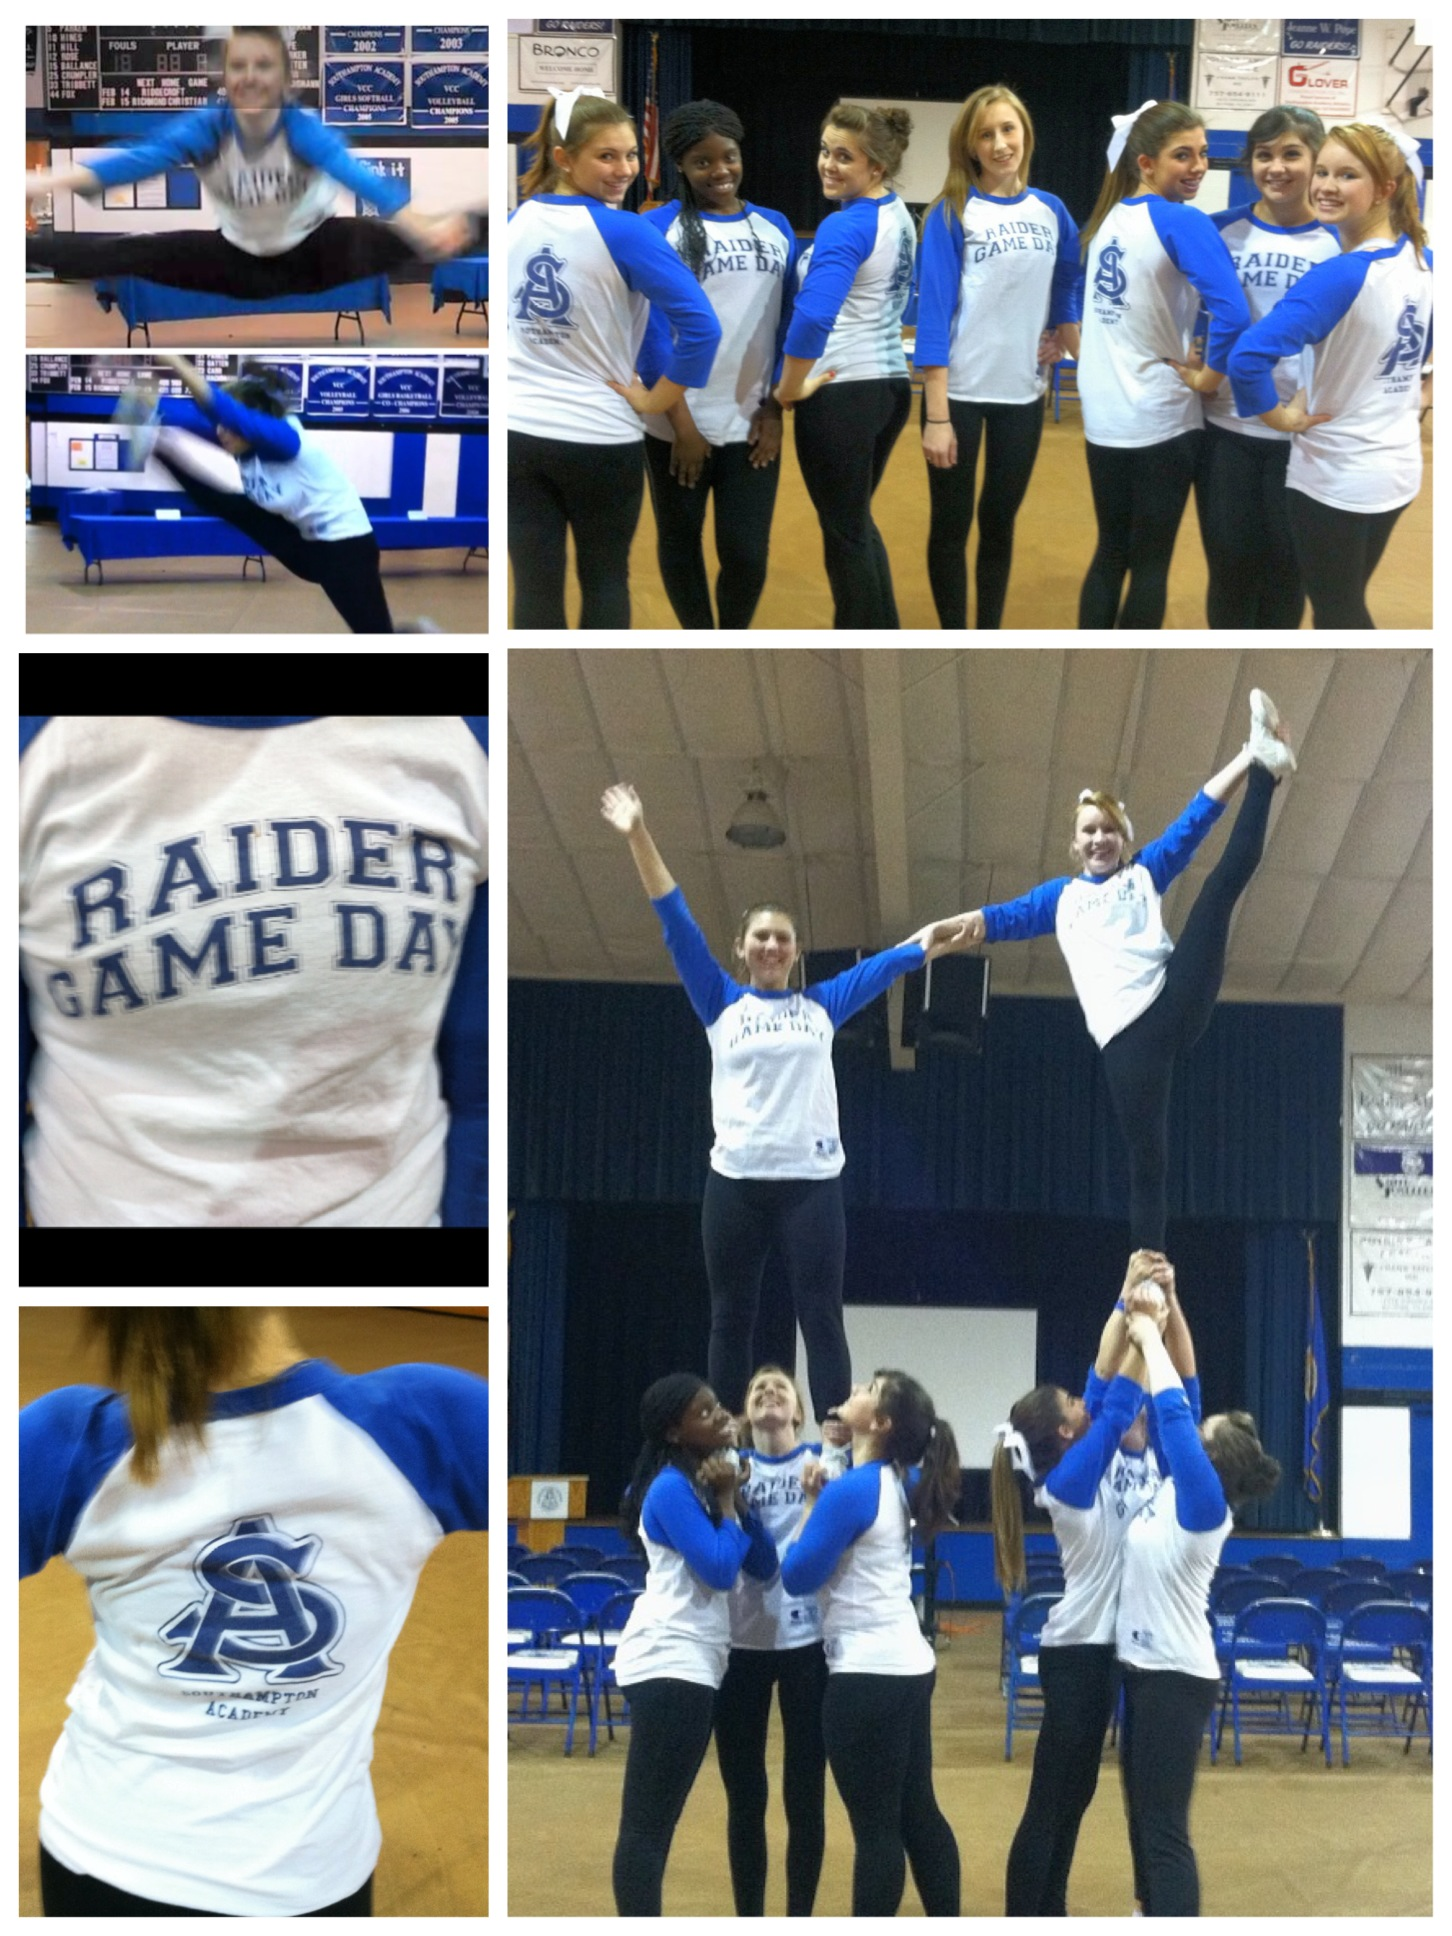 raider cheer game day t shirt photo